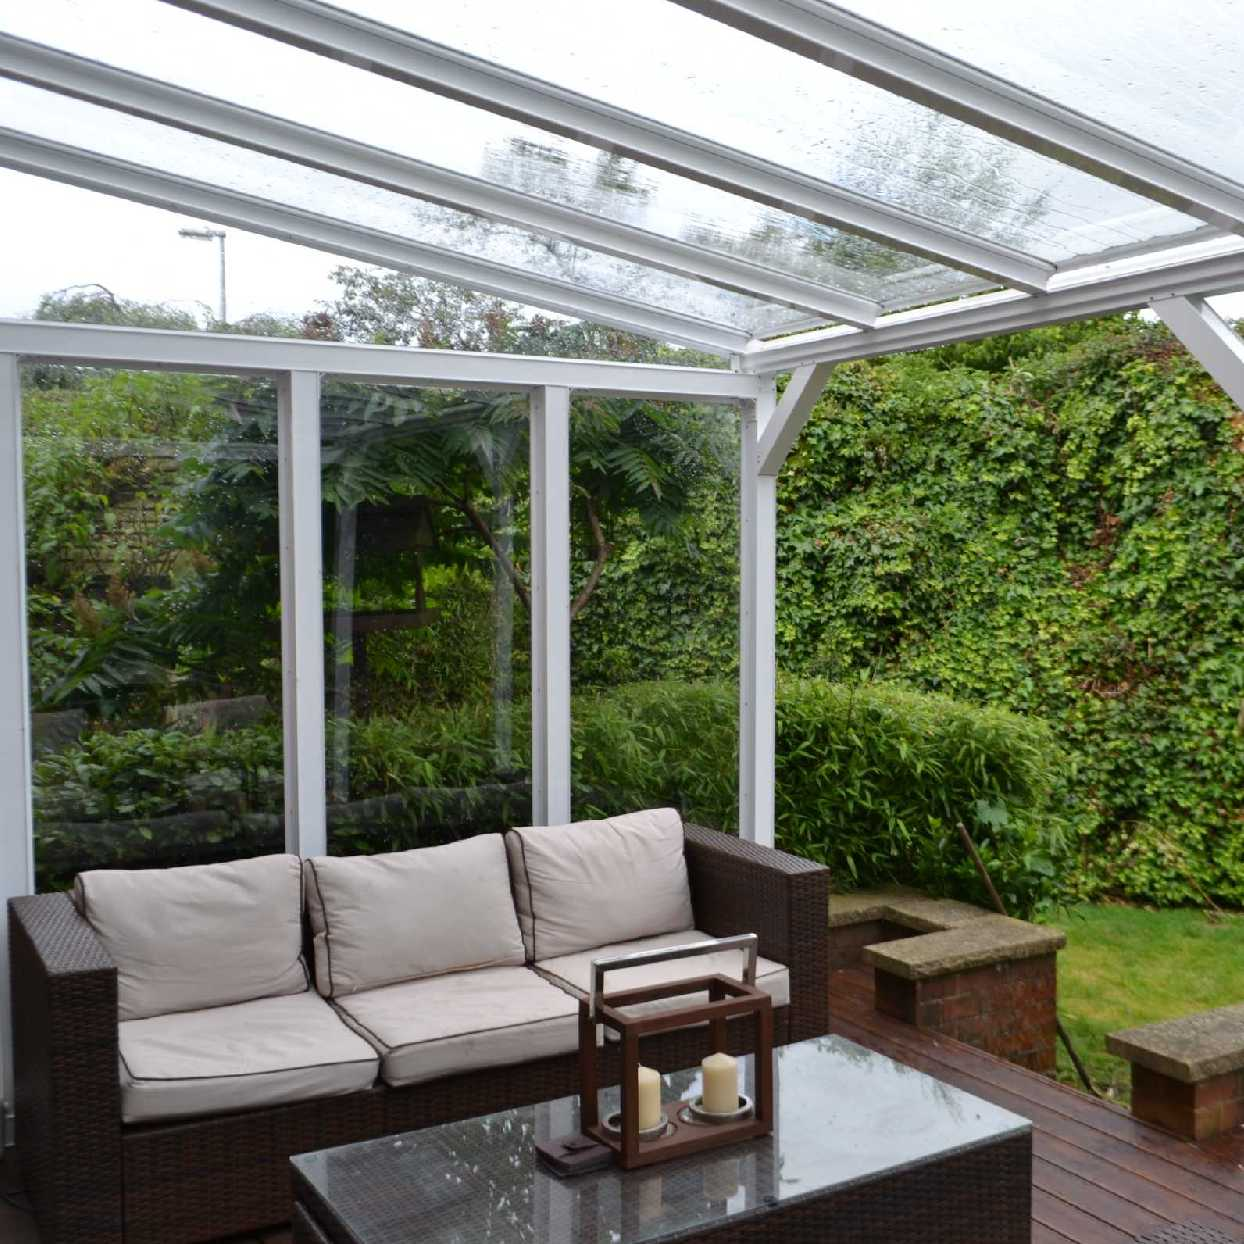 Omega Smart White Lean-To Canopy with 6mm Glass Clear Plate Polycarbonate Glazing - 10.5m (W) x 3.0m (P), (5) Supporting Posts